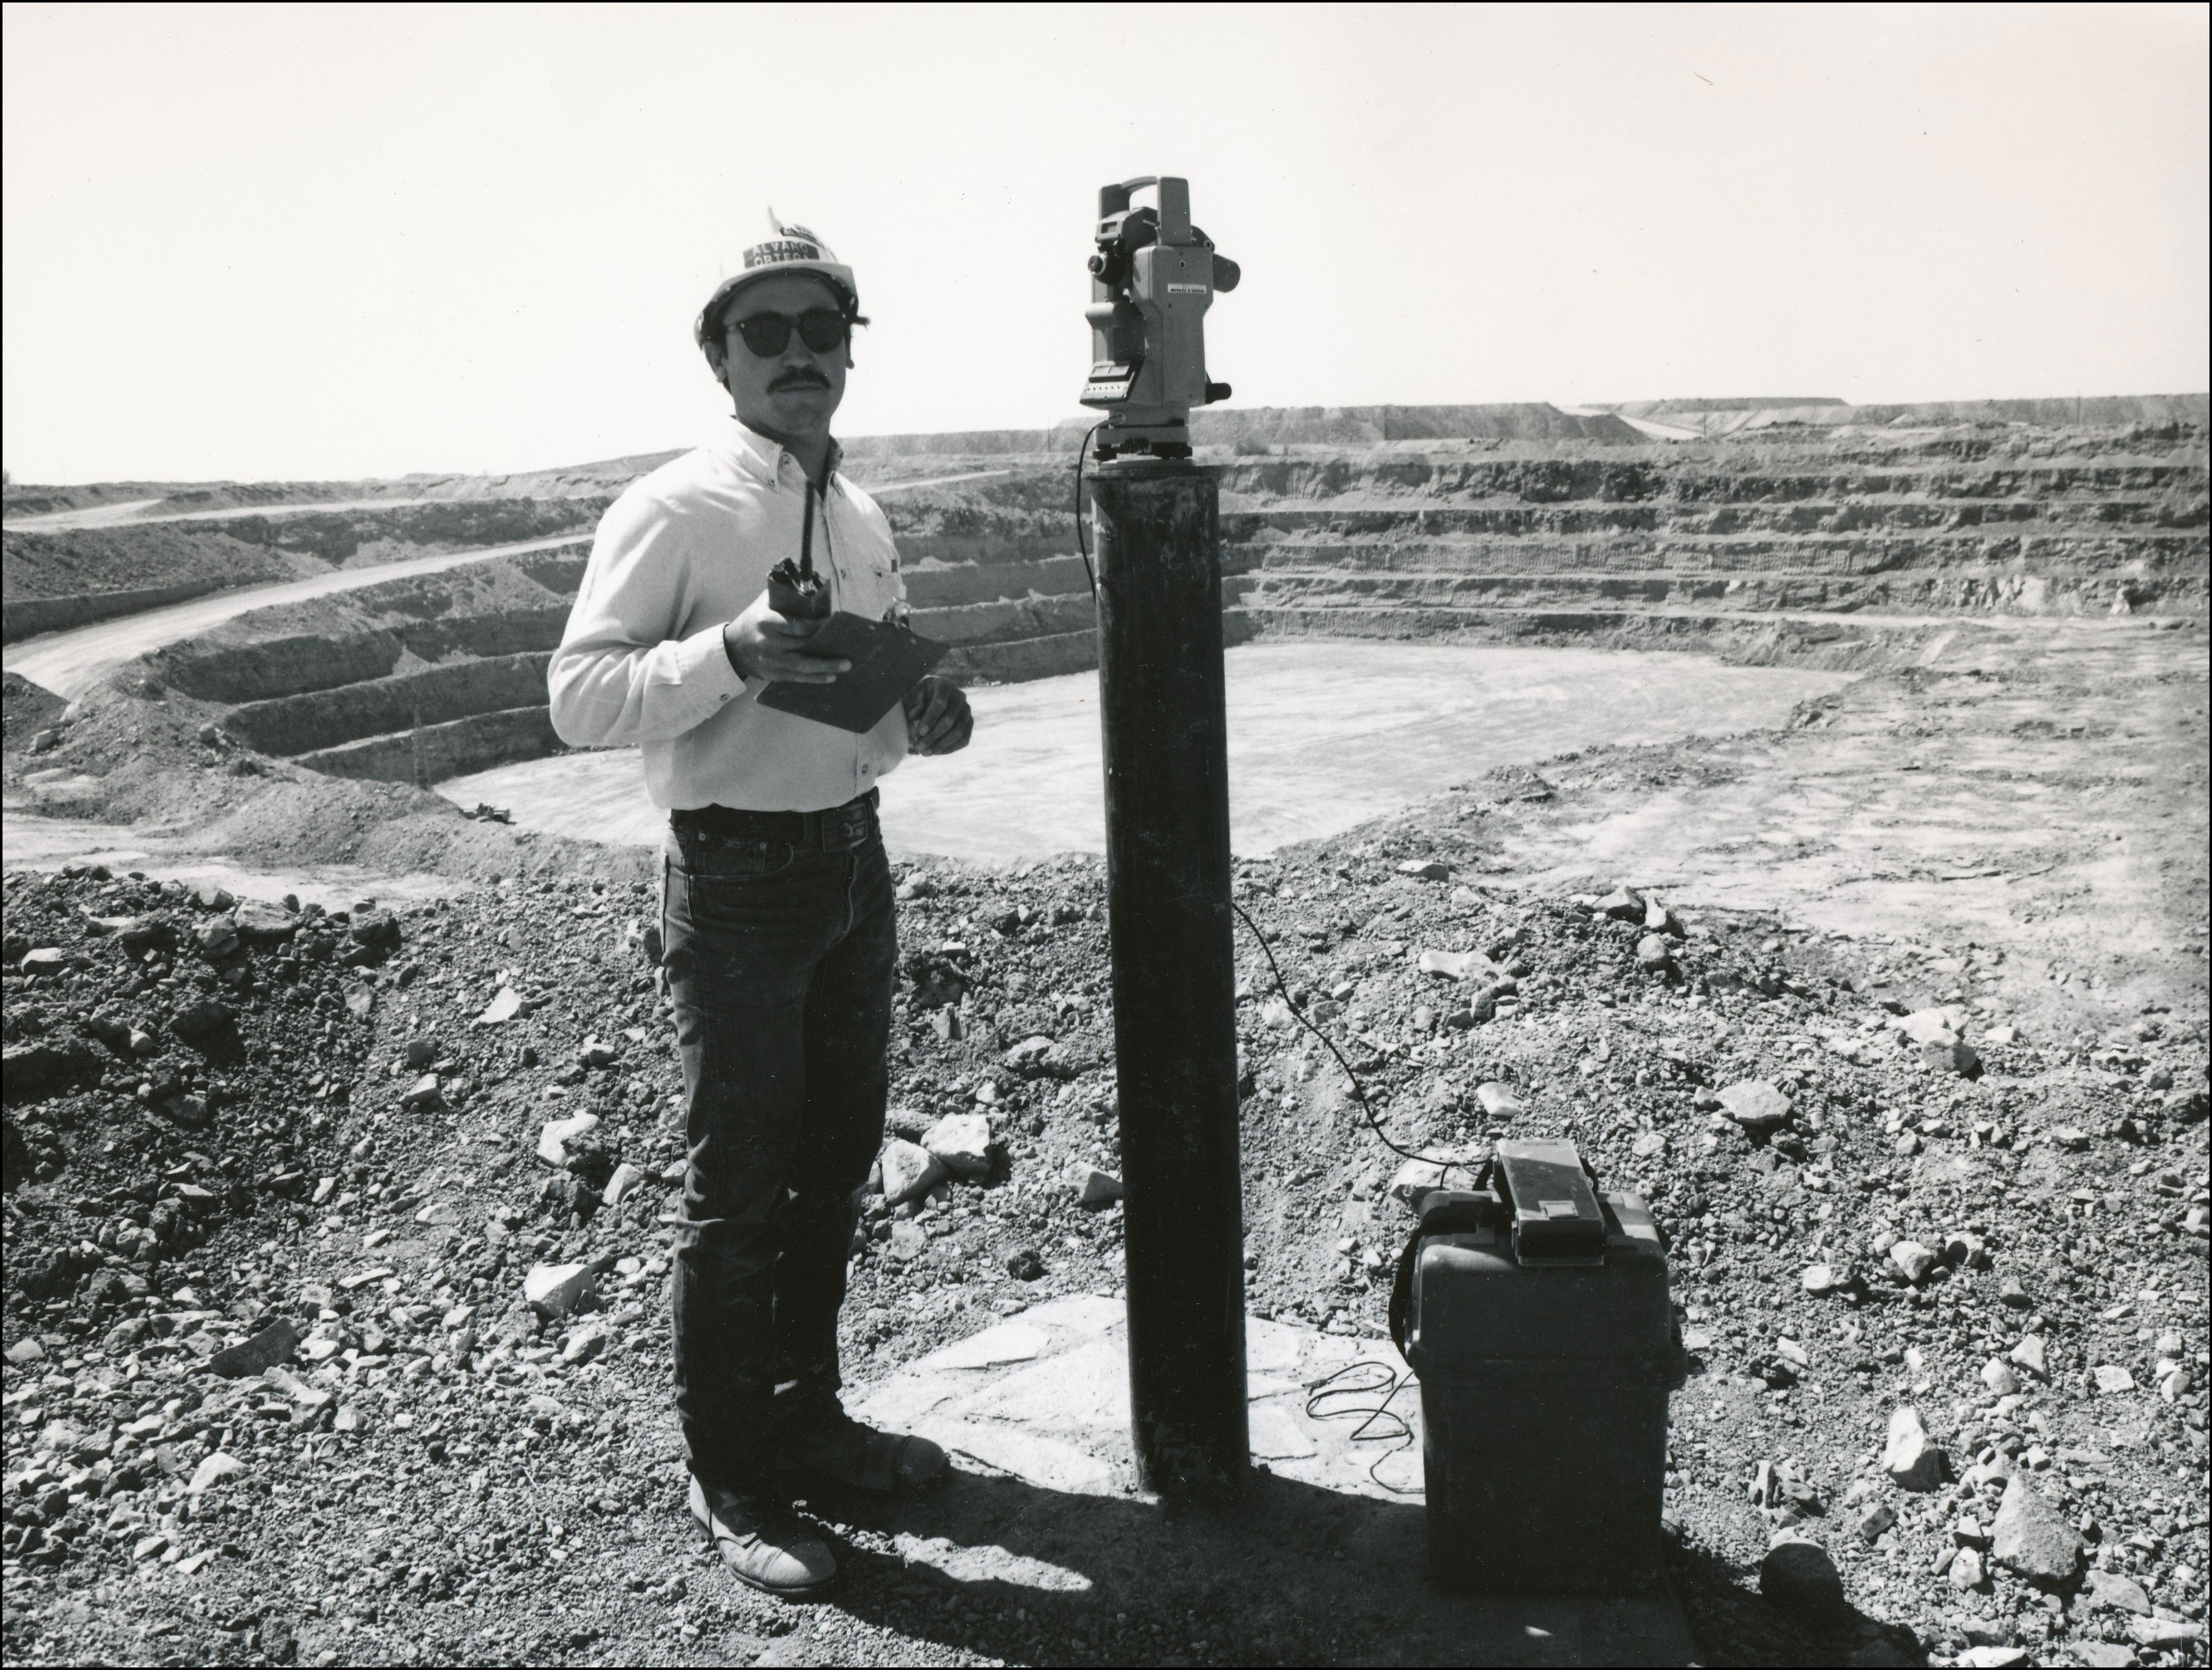 Man in glasses and hard hat standing next to an open mining area